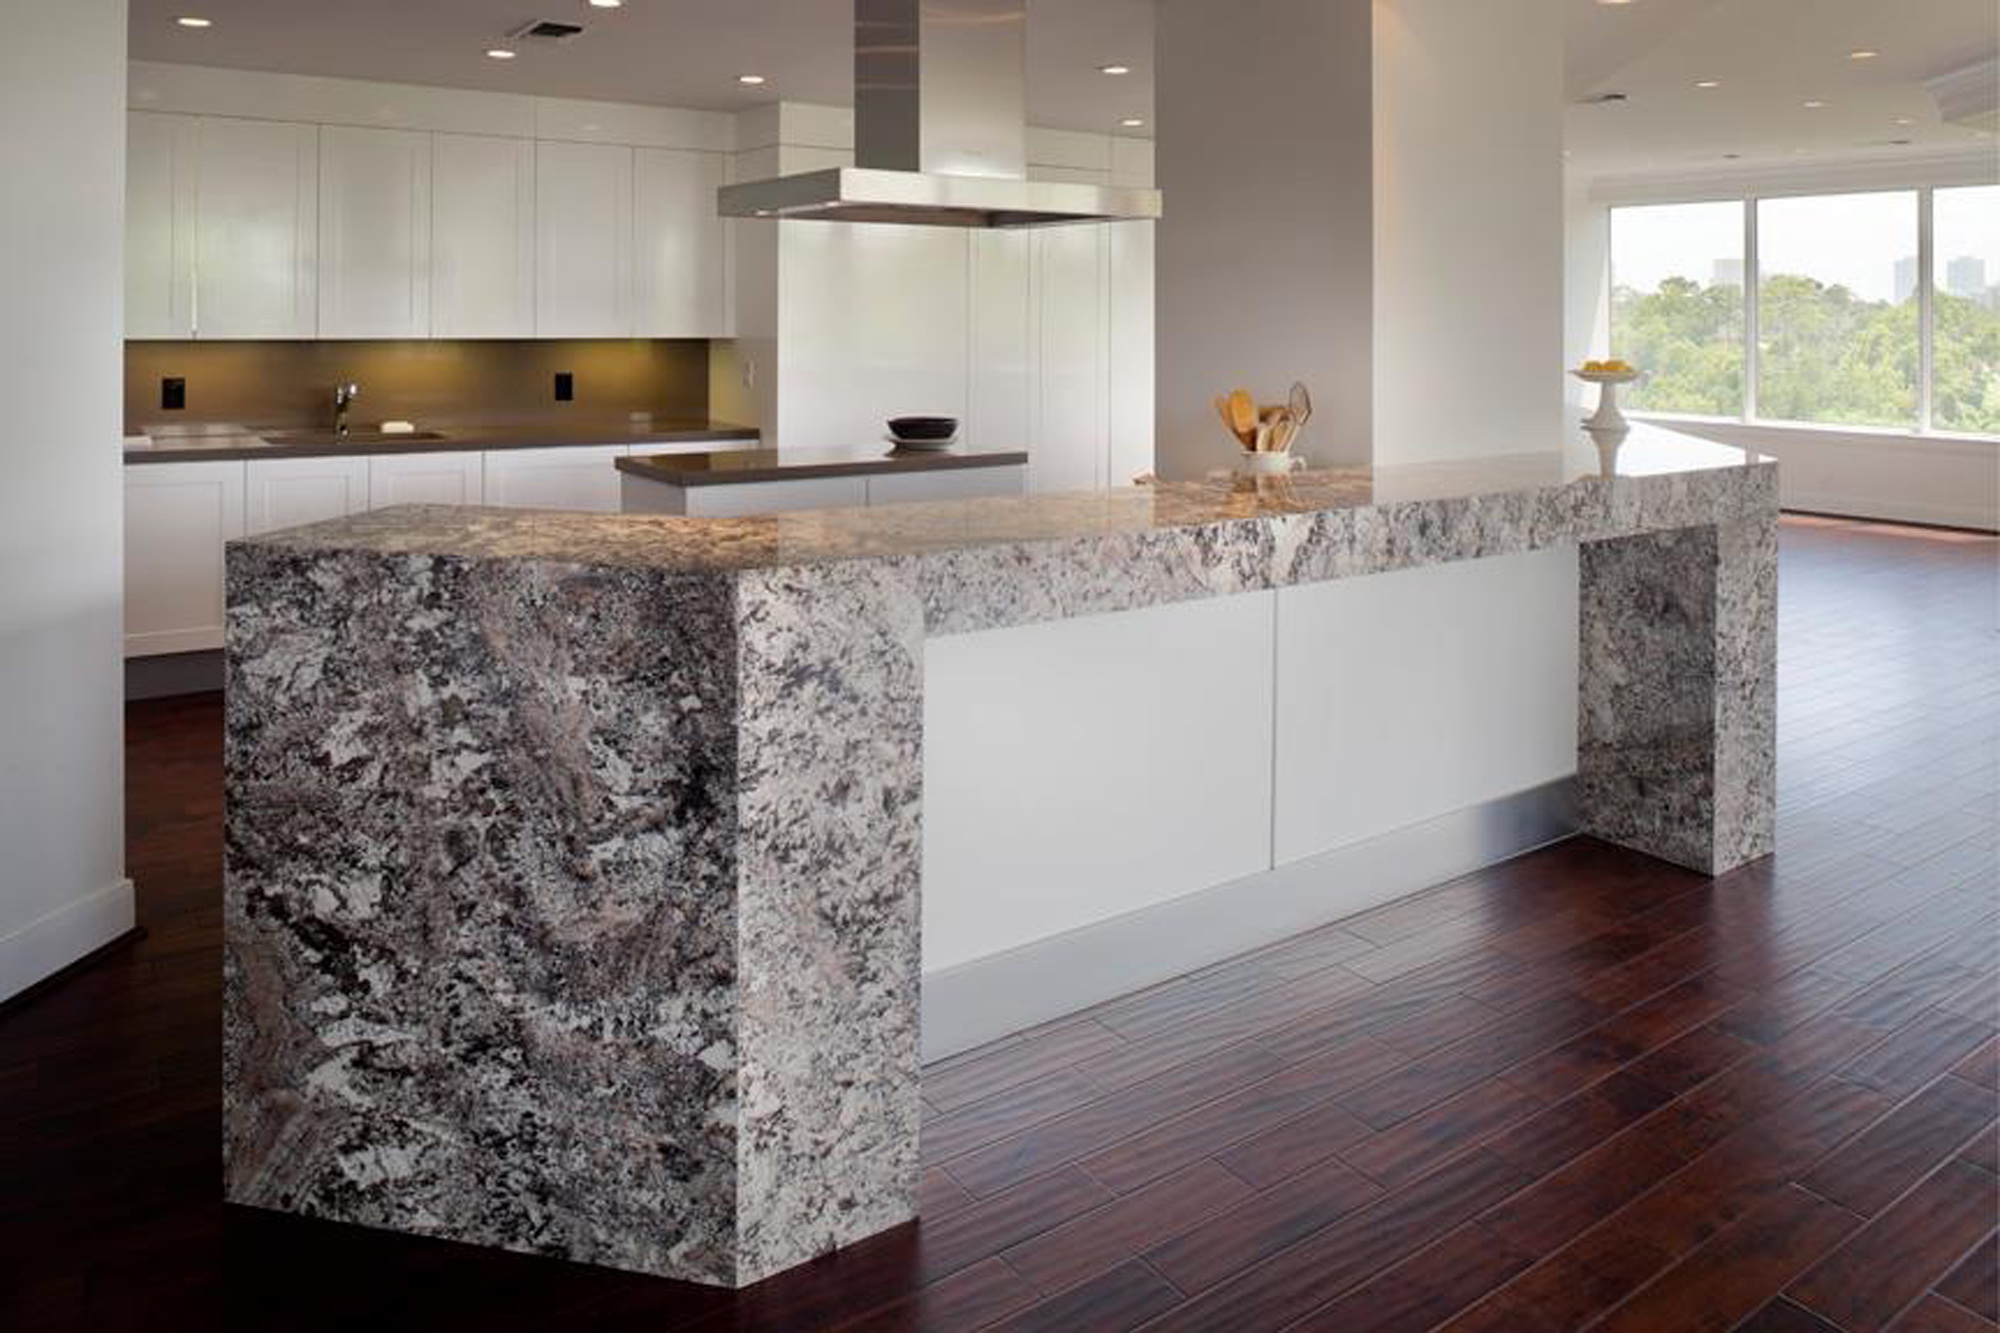 Ghba remodelers council choose countertops natural stone for Unfinished granite slabs